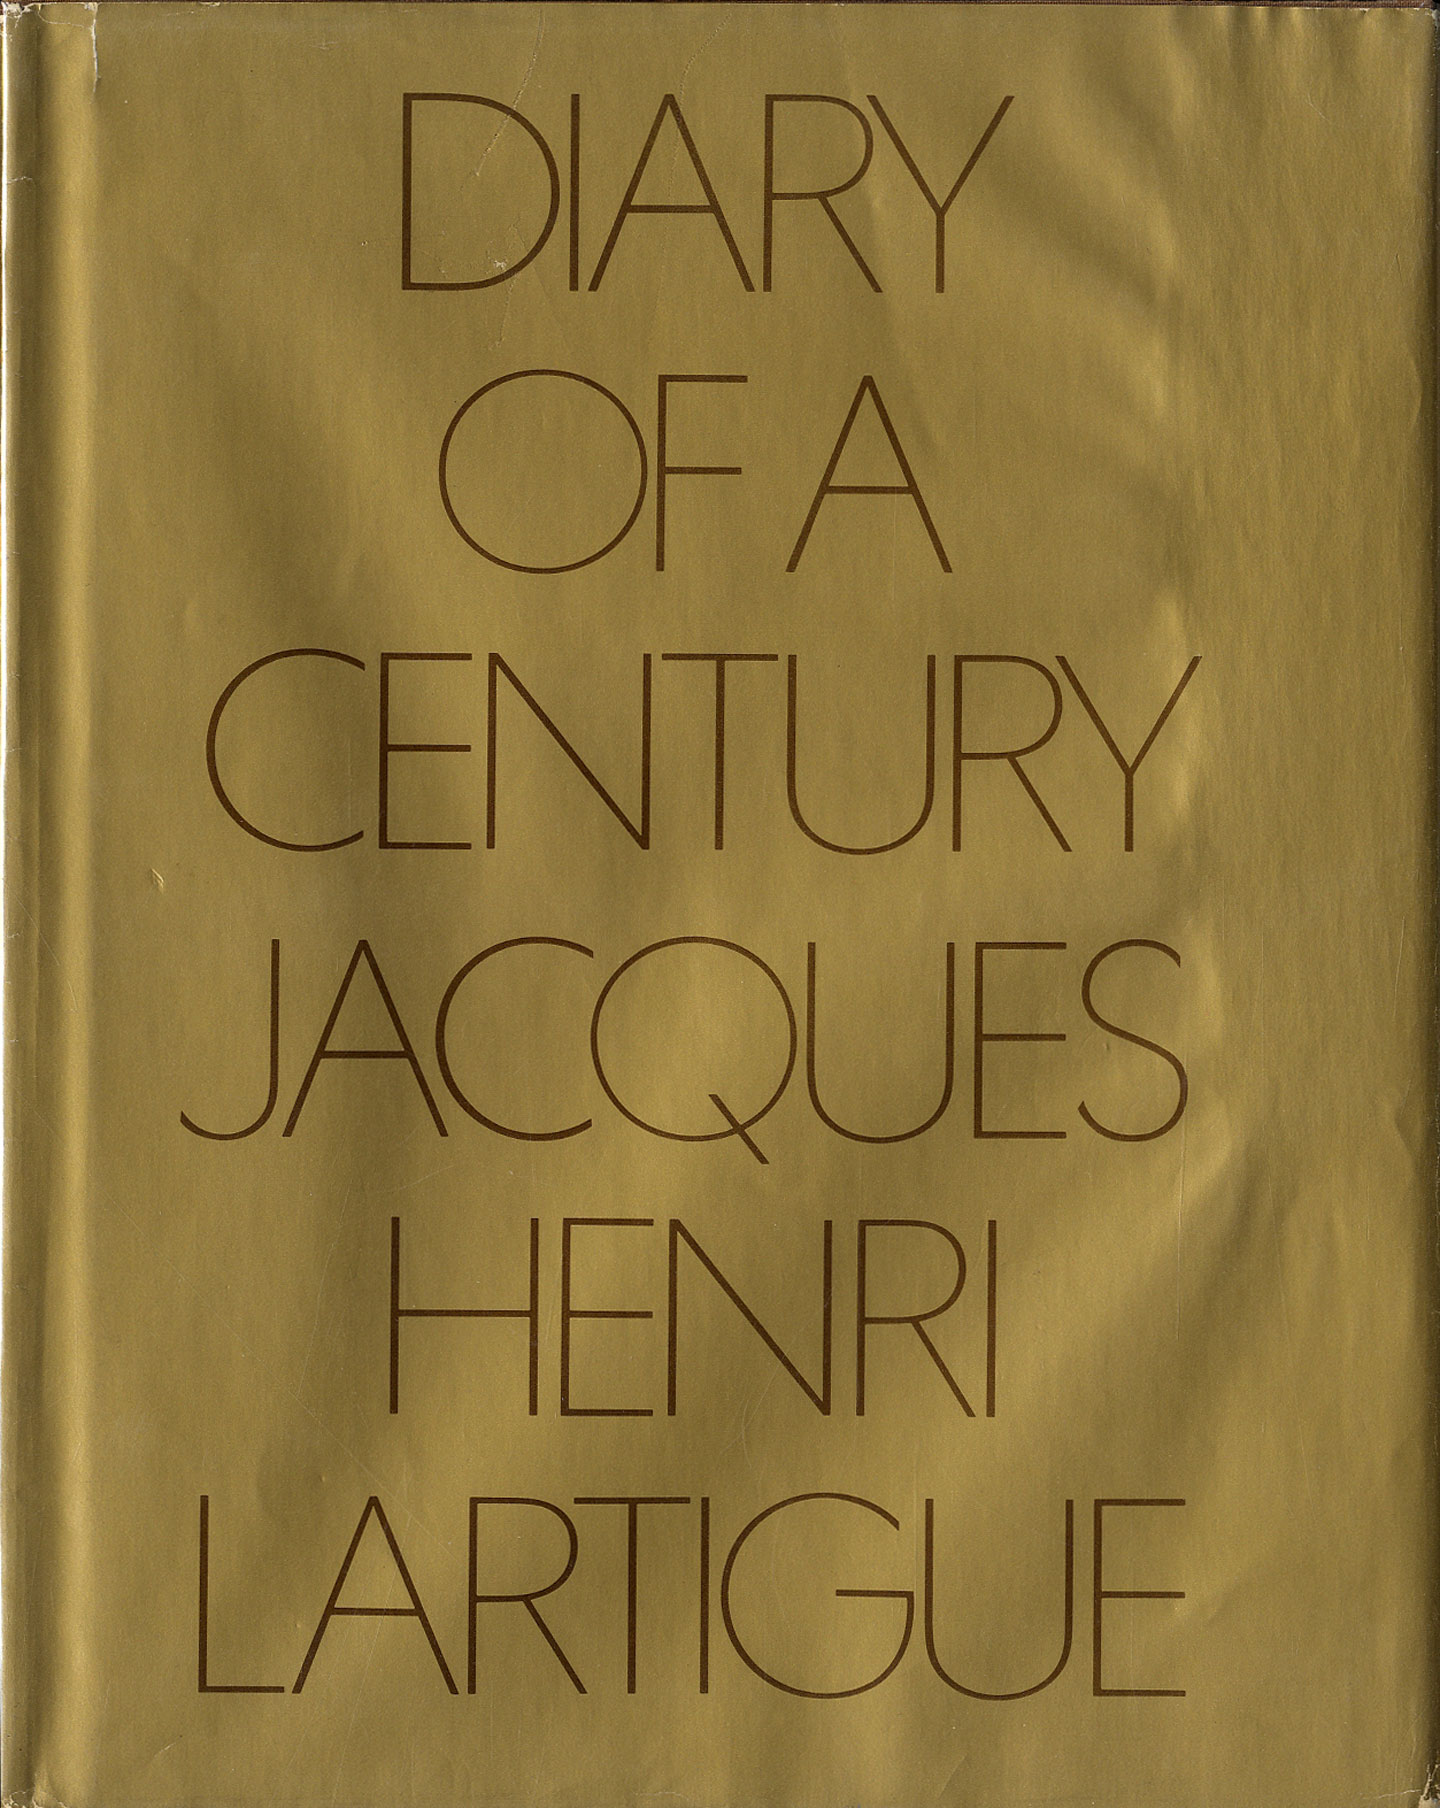 Jacques-Henri Lartigue: Diary of a Century (Second Printing)